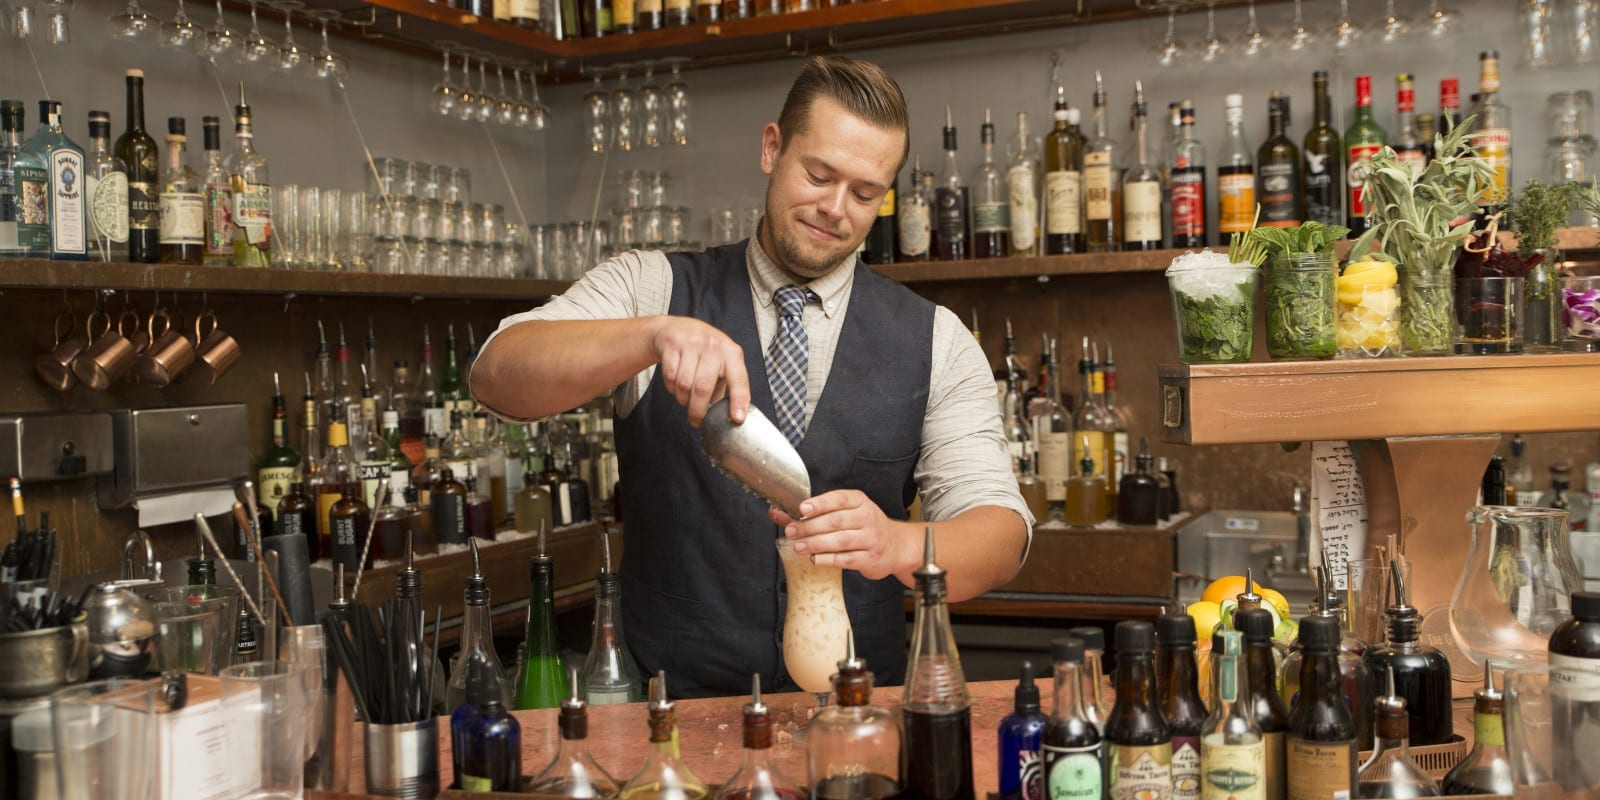 Mixing It Up: The Top Watering Holes of the Holy City